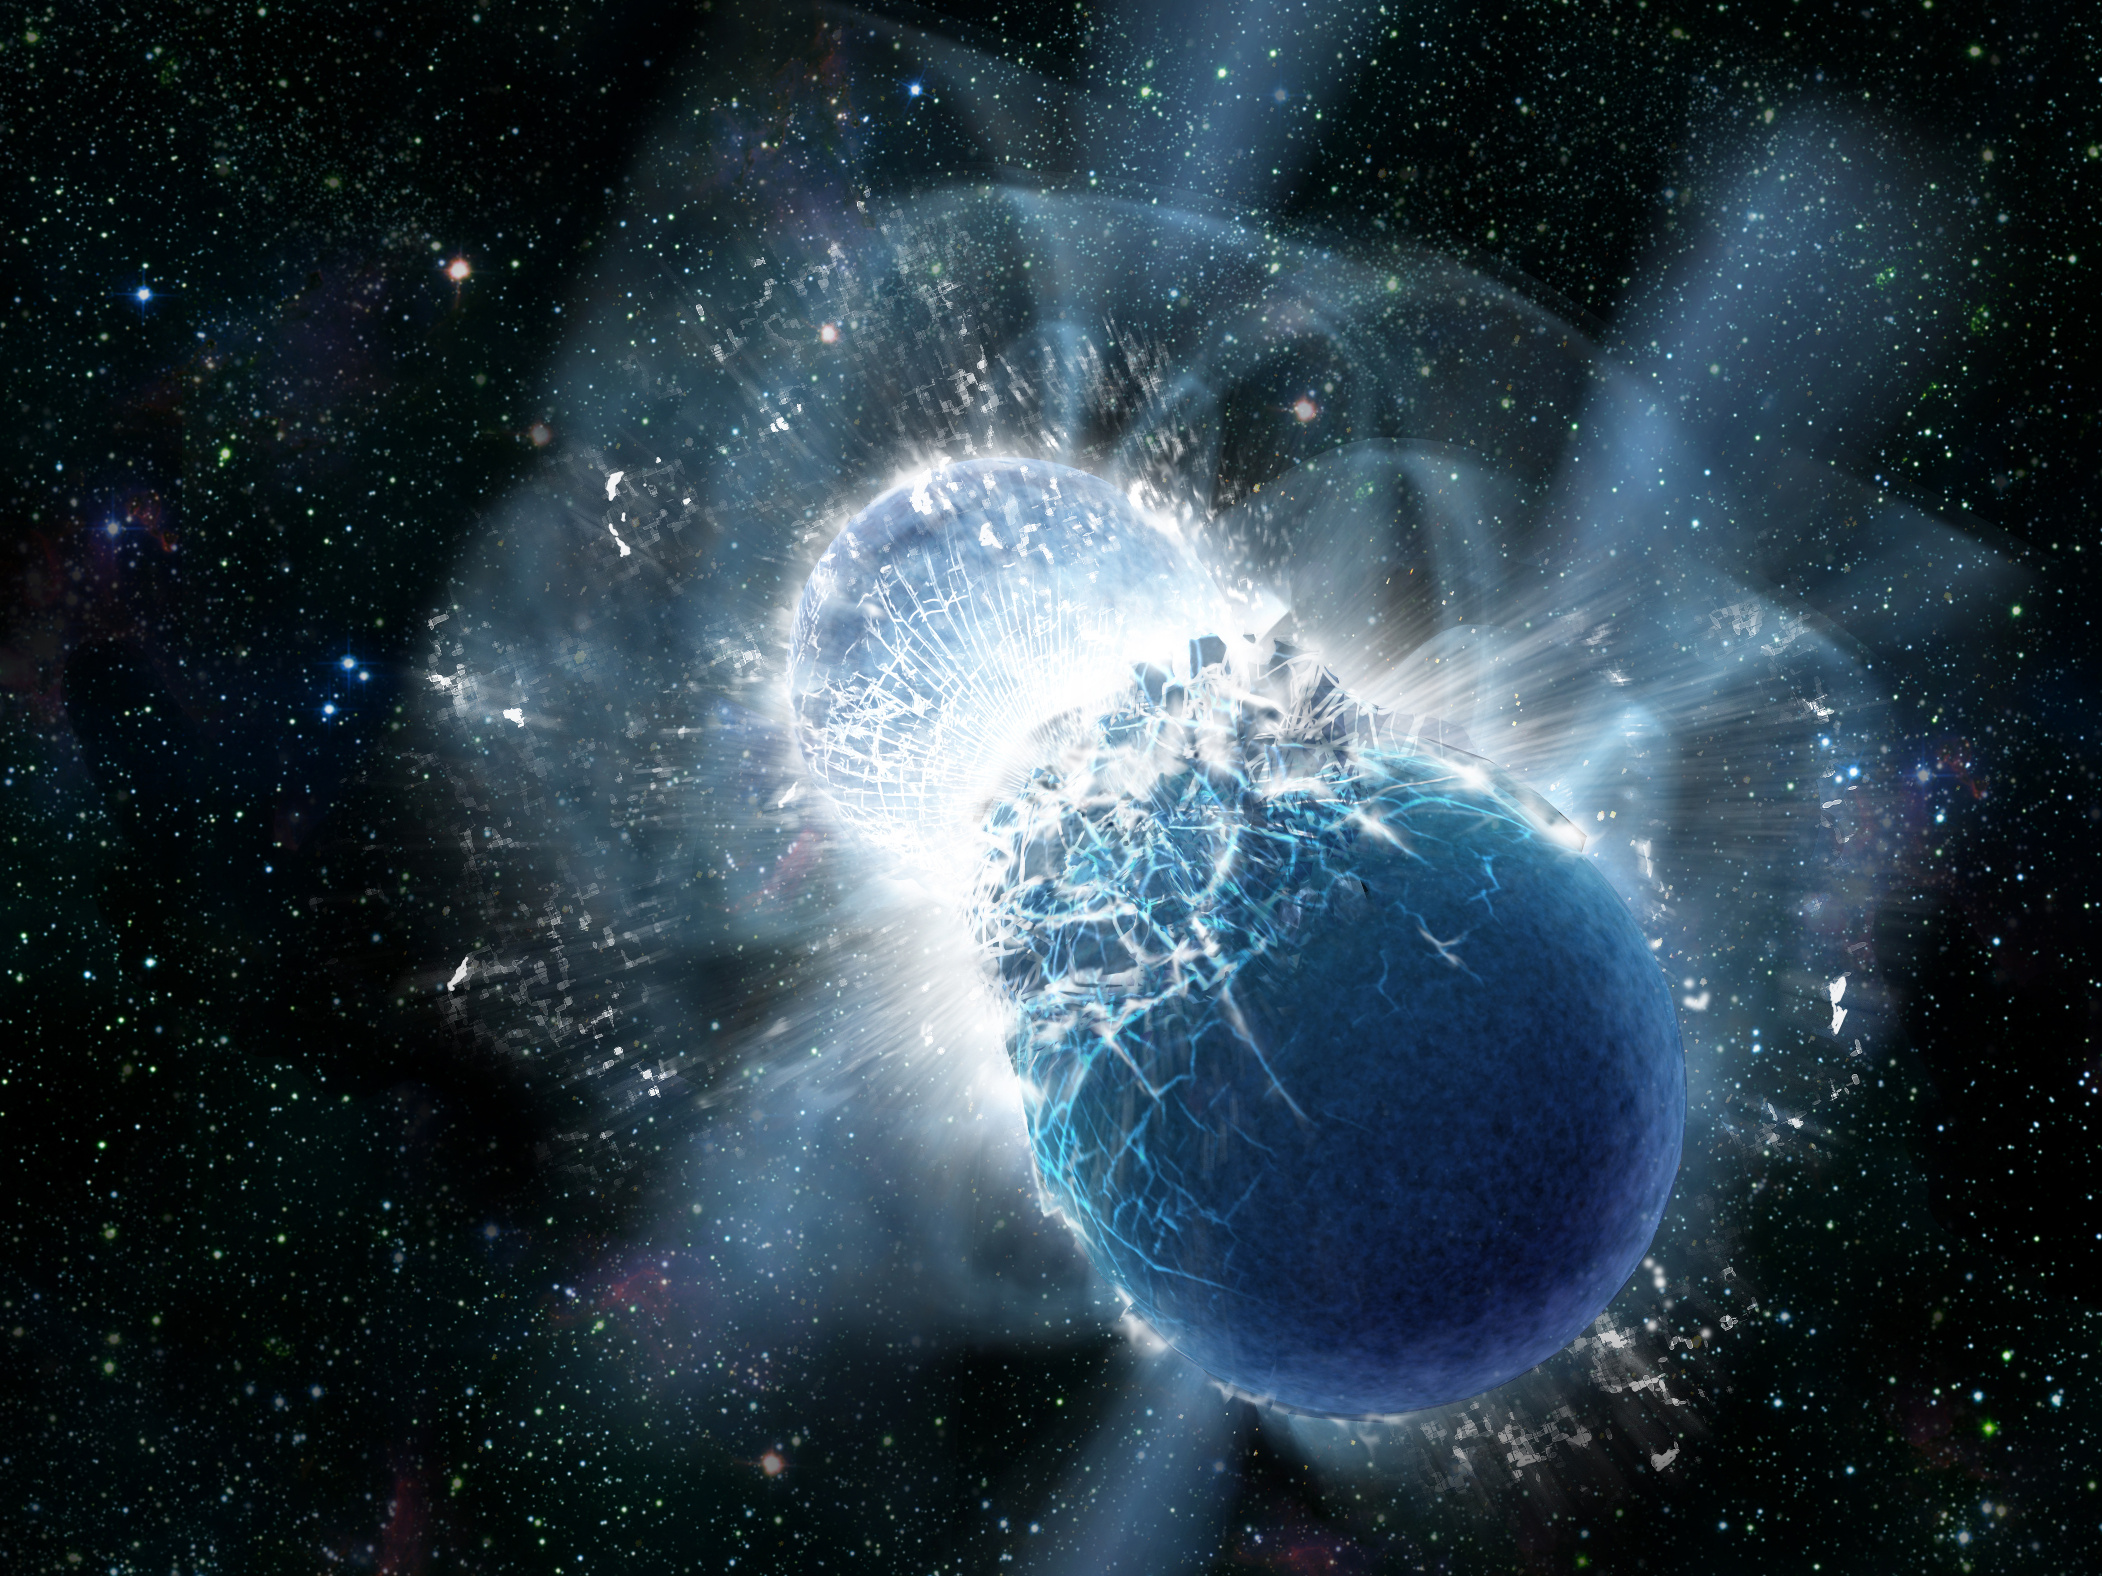 This artist's impression depicts a powerful cosmic event that might have produced the fast radio burst FRB131104. Binary-neutron-star mergers occur when two neutron stars spiral together and merge, forming a black hole. Image credit: Dana Berry, Skyworks Digital.